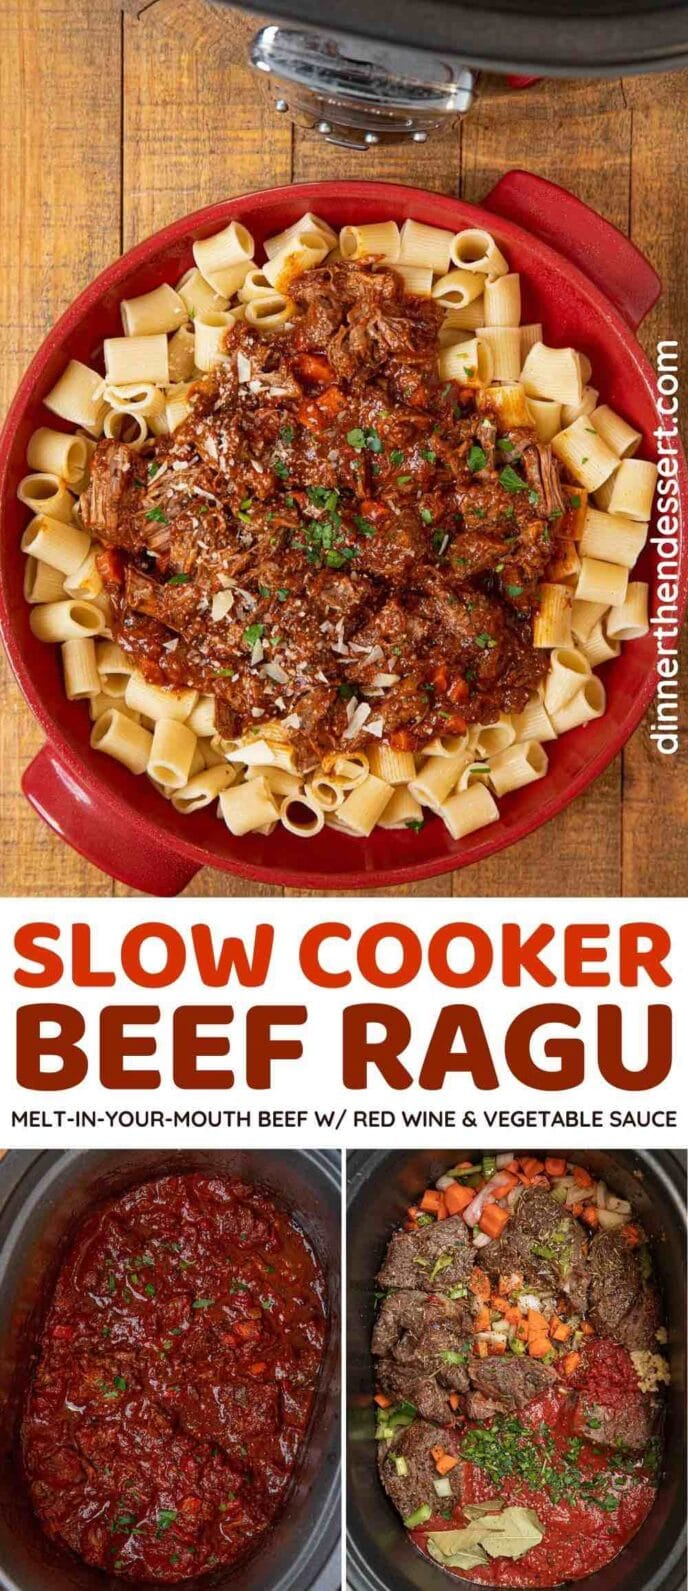 Crockpot Beef Ragu collage